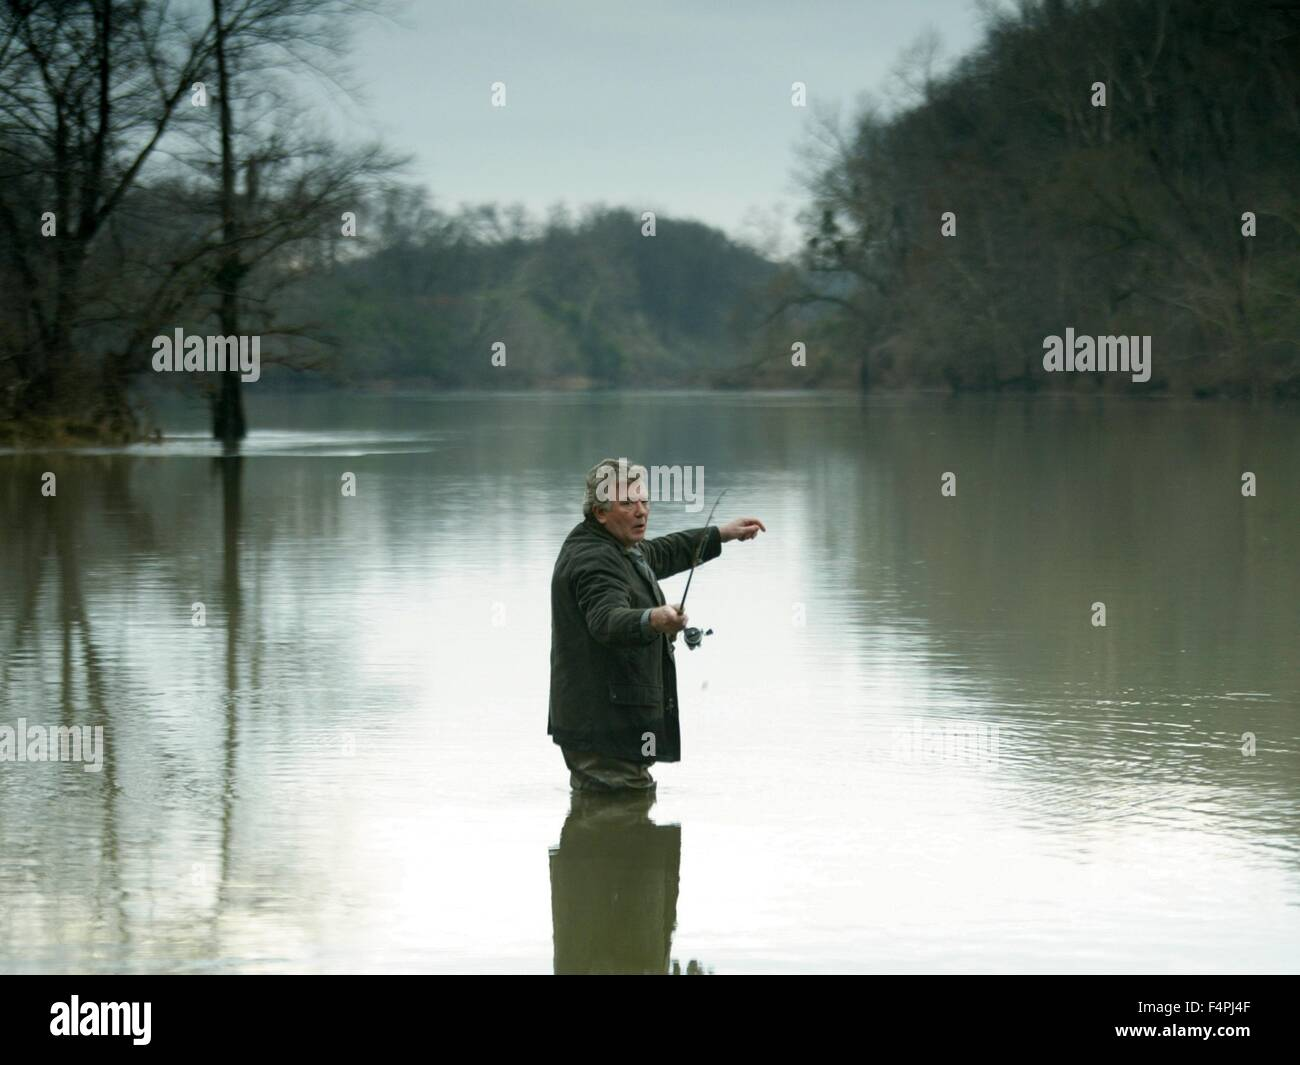 Albert Finney / Big Fish / 2003 directed by Tim Burton [Columbia Pictures] - Stock Image